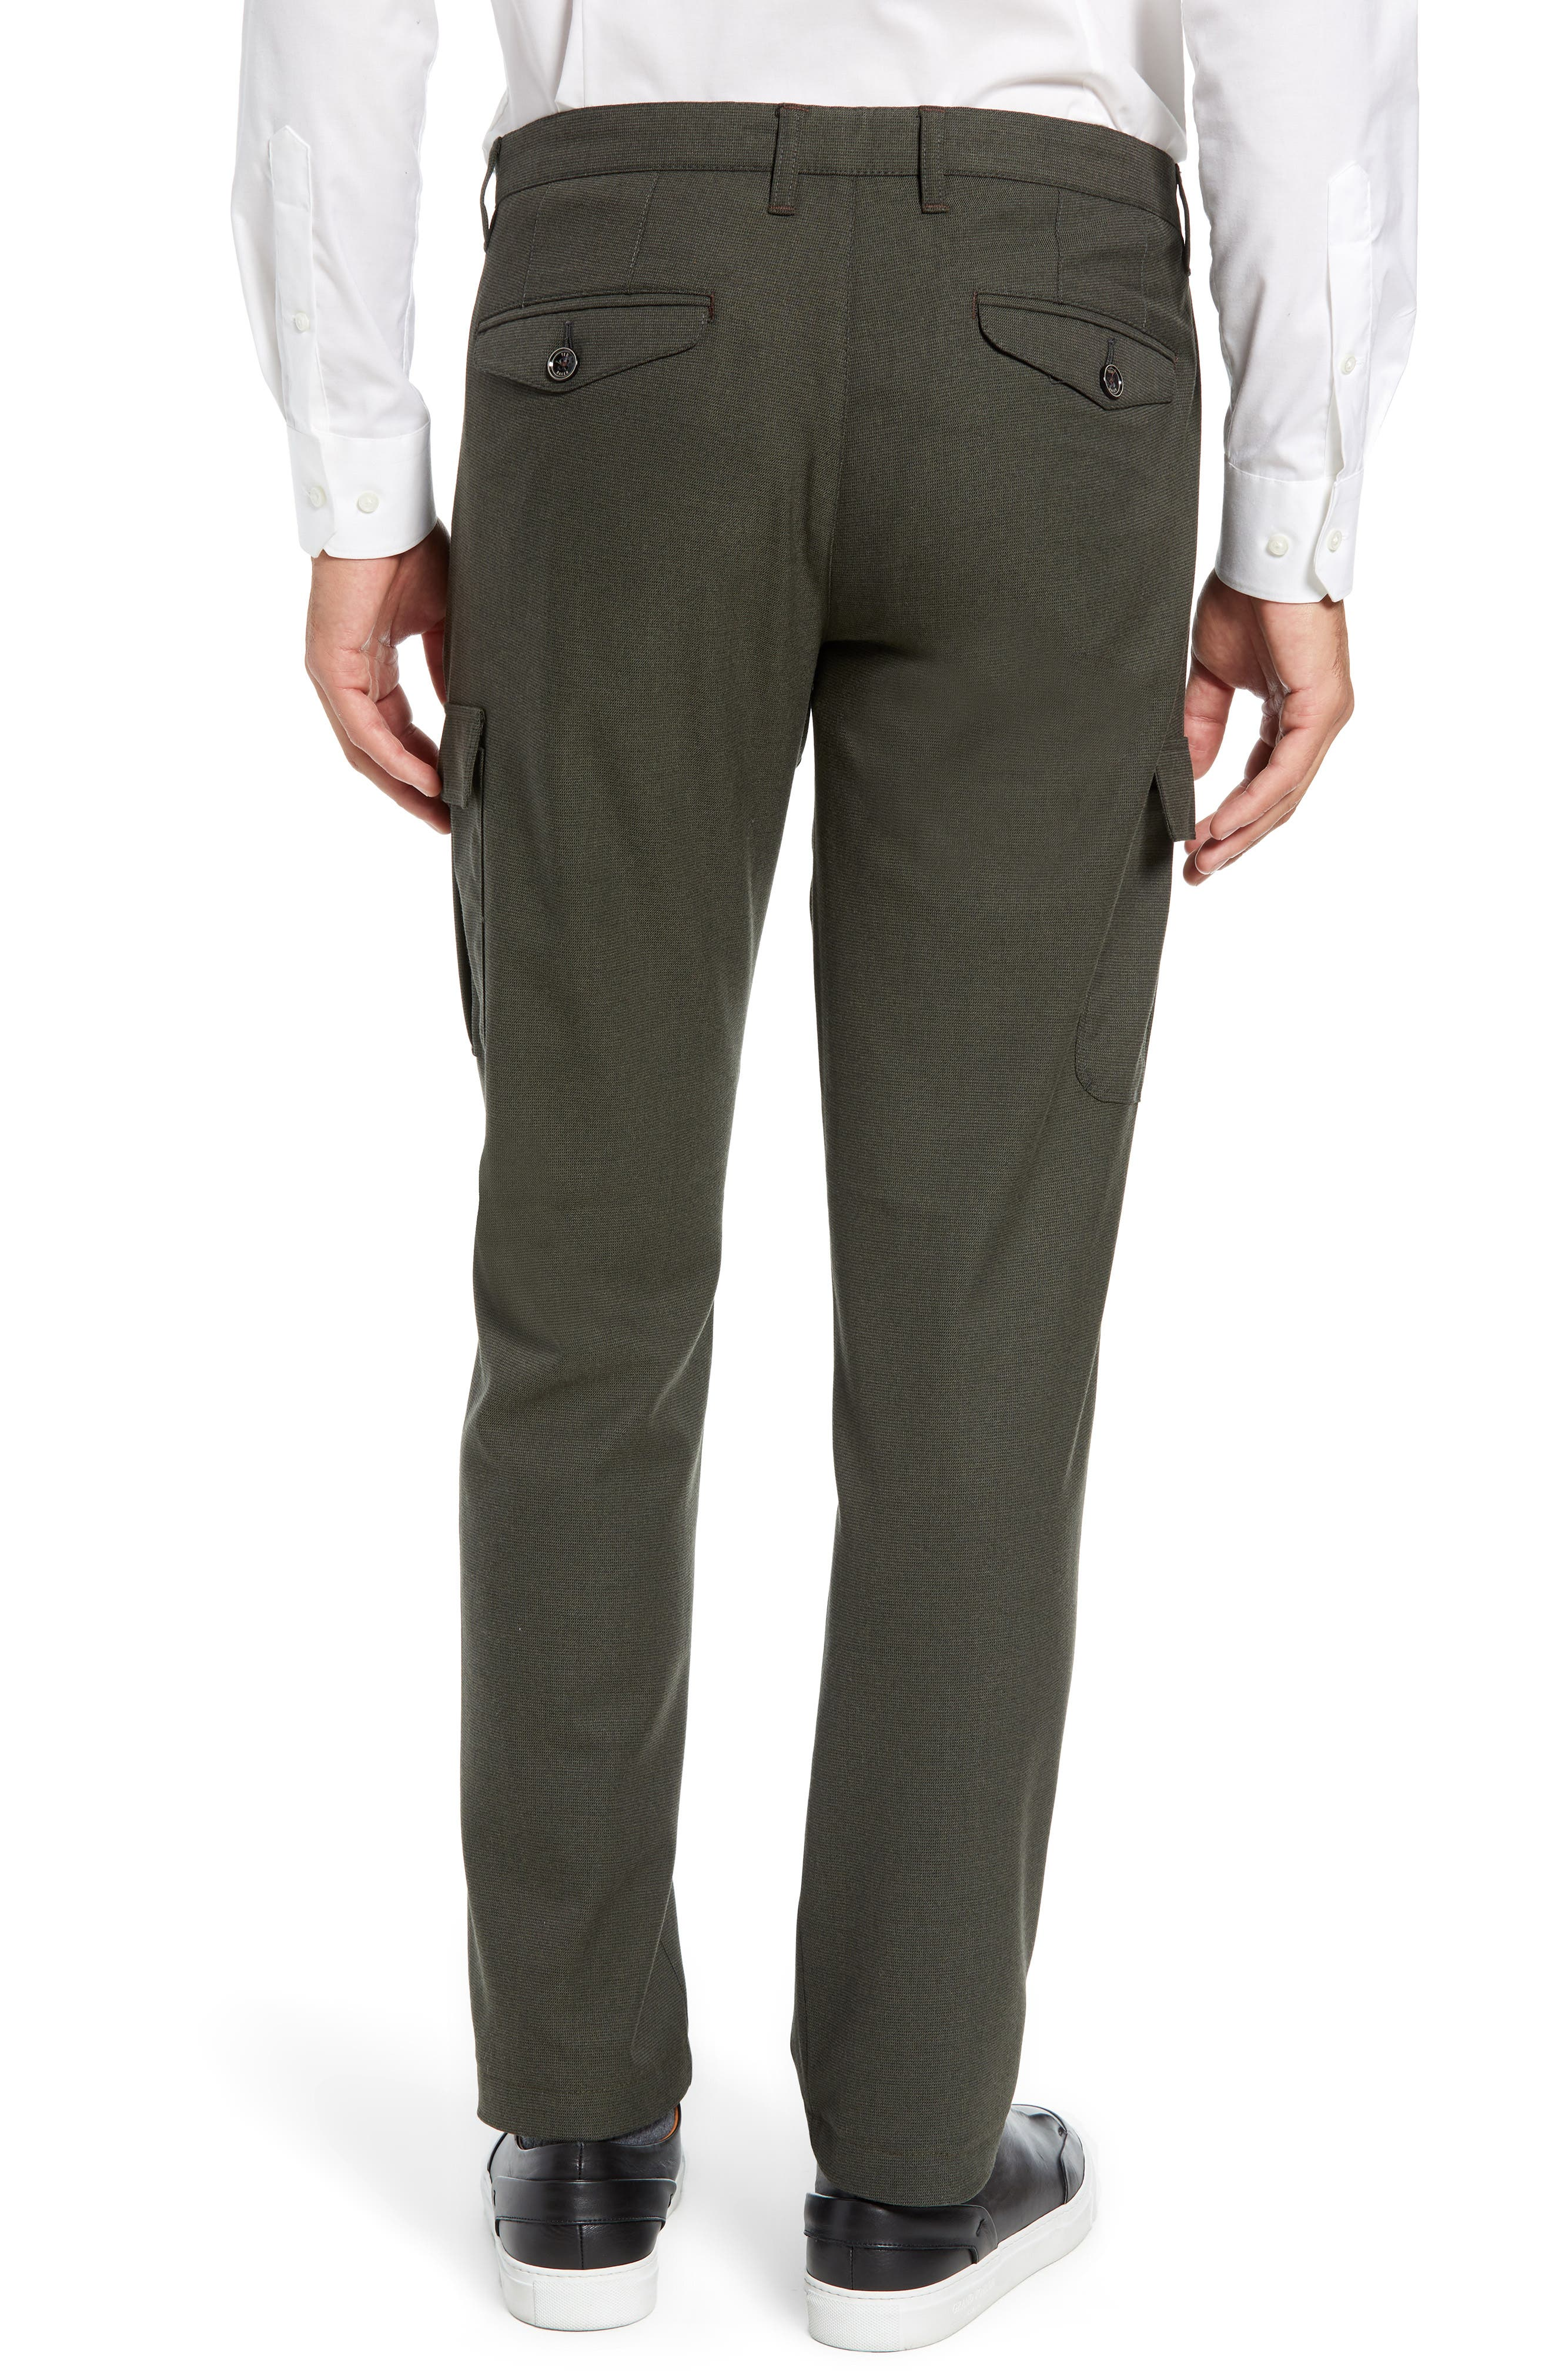 Zakery Slim Fit Utility Cargo Trousers,                             Alternate thumbnail 2, color,                             KHAKI